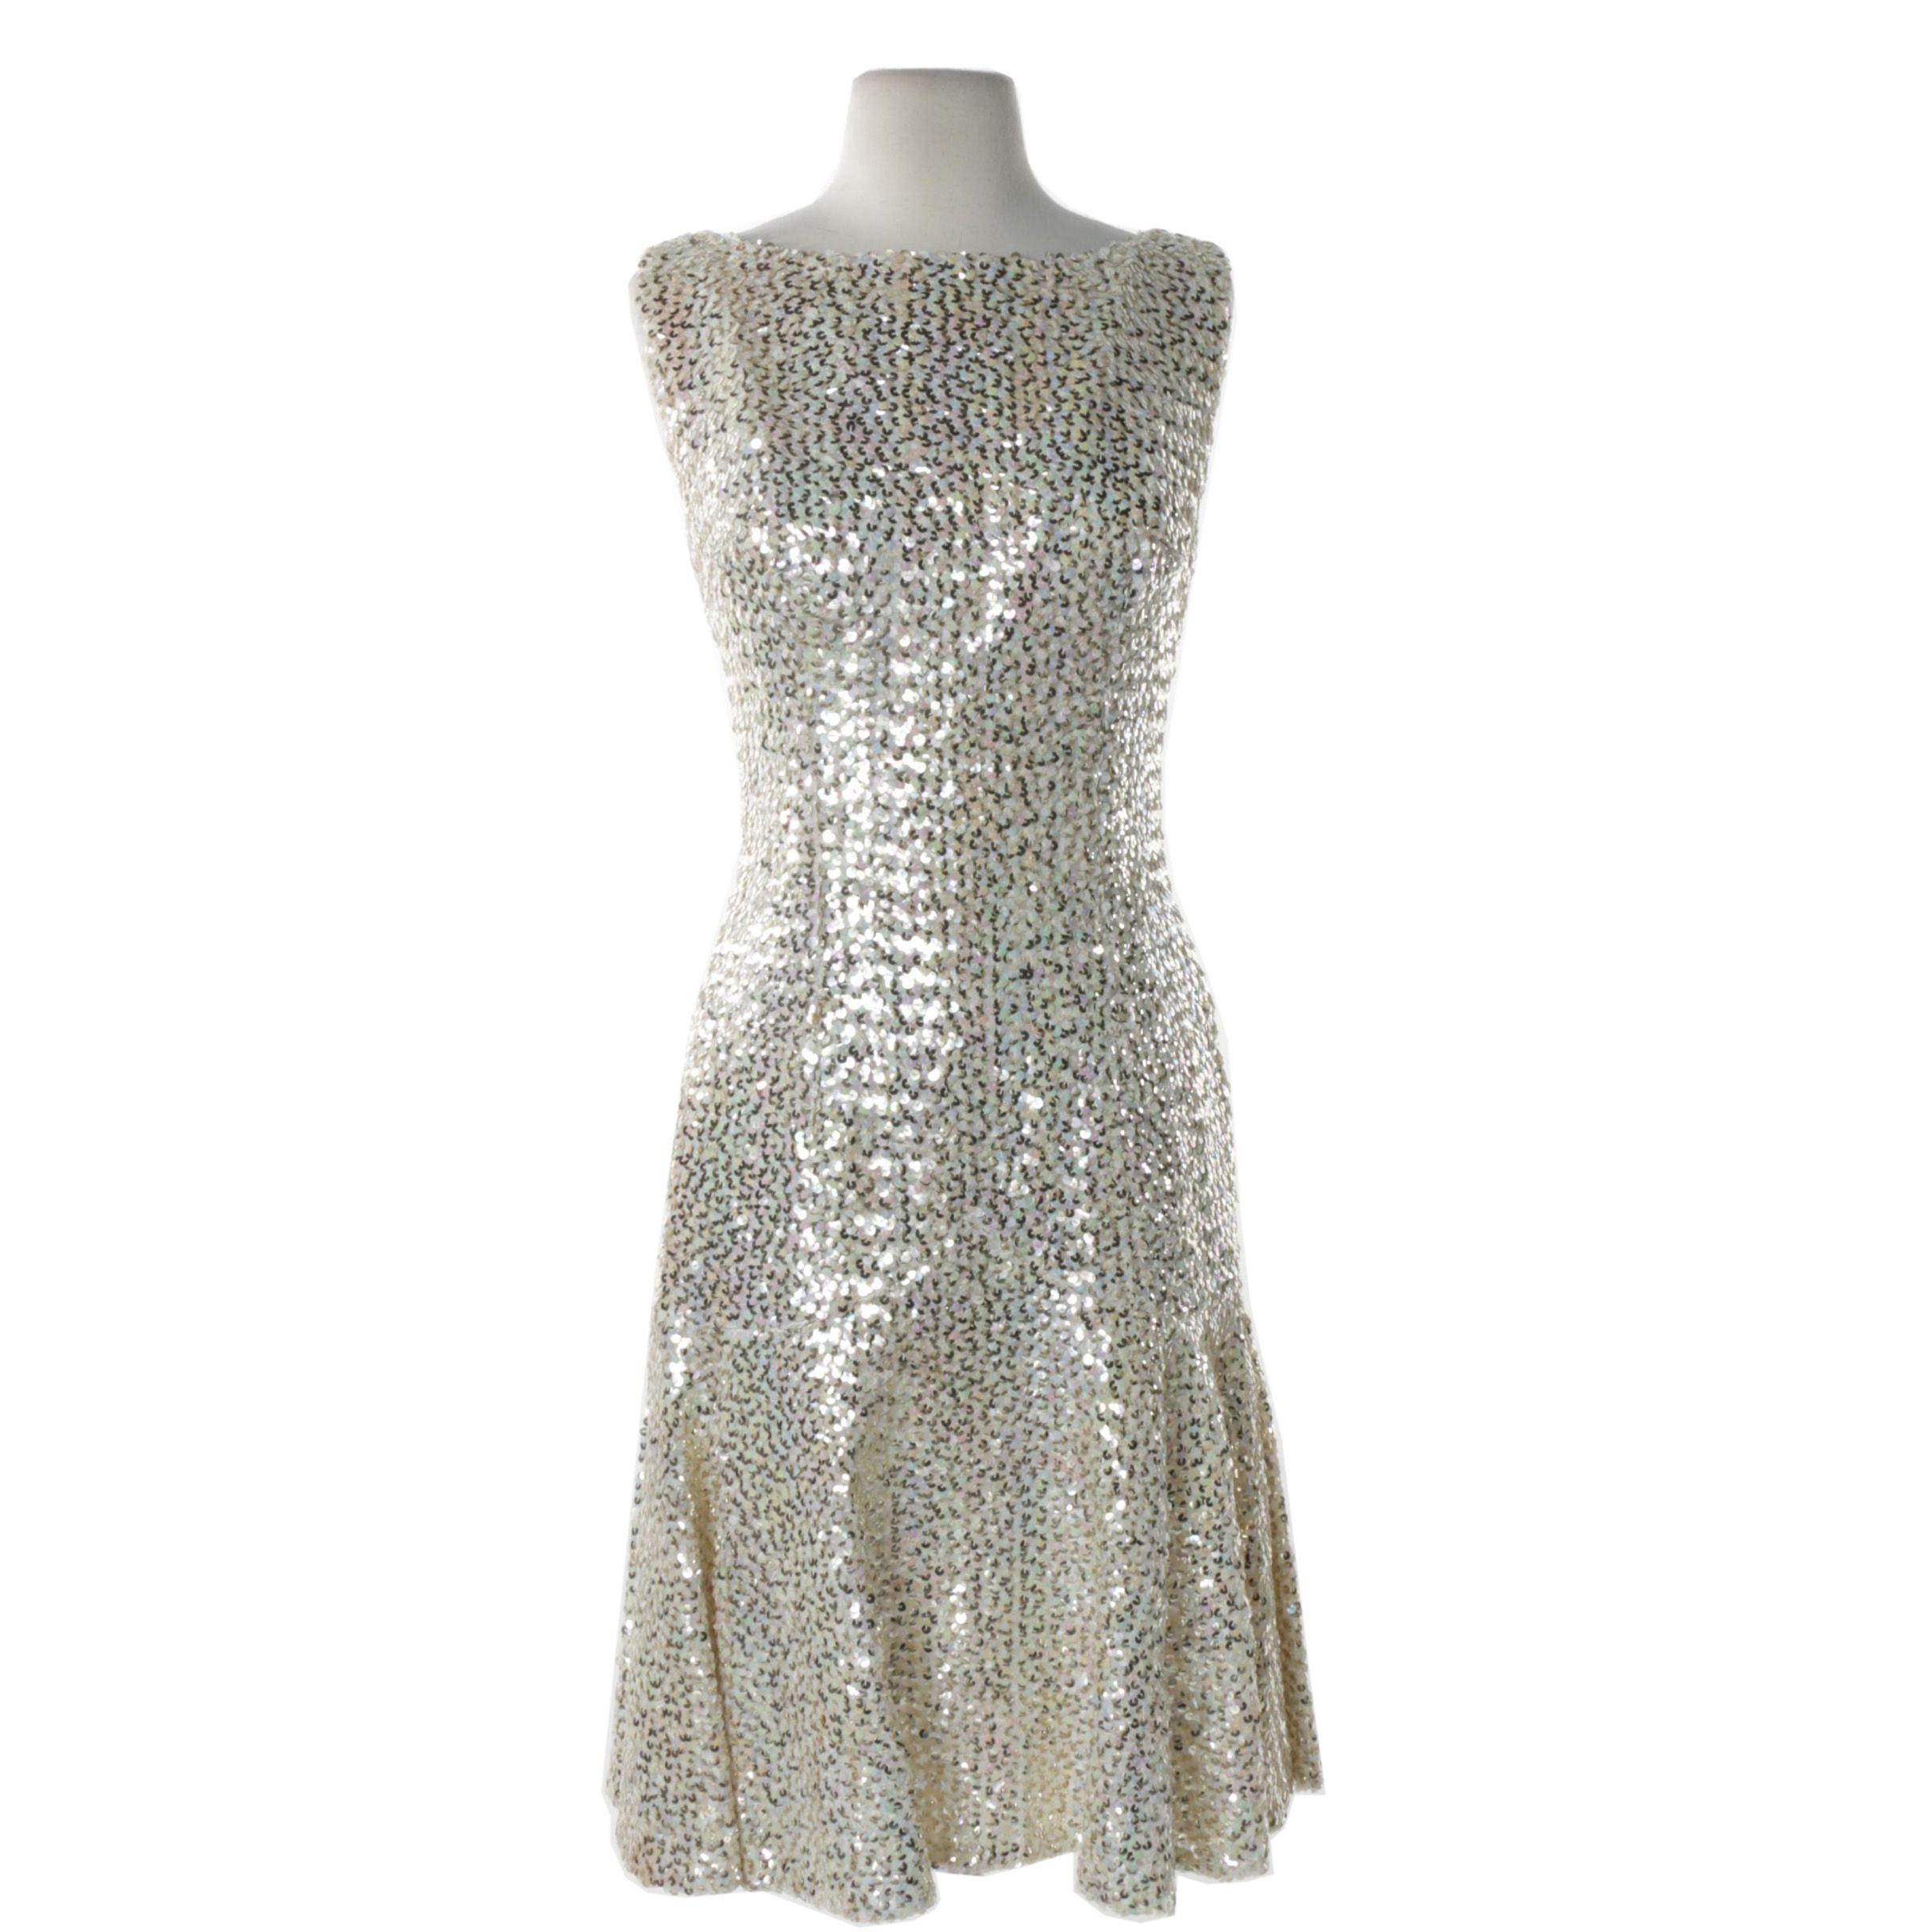 Circa 1960s Vintage Sequined Cocktail Dress